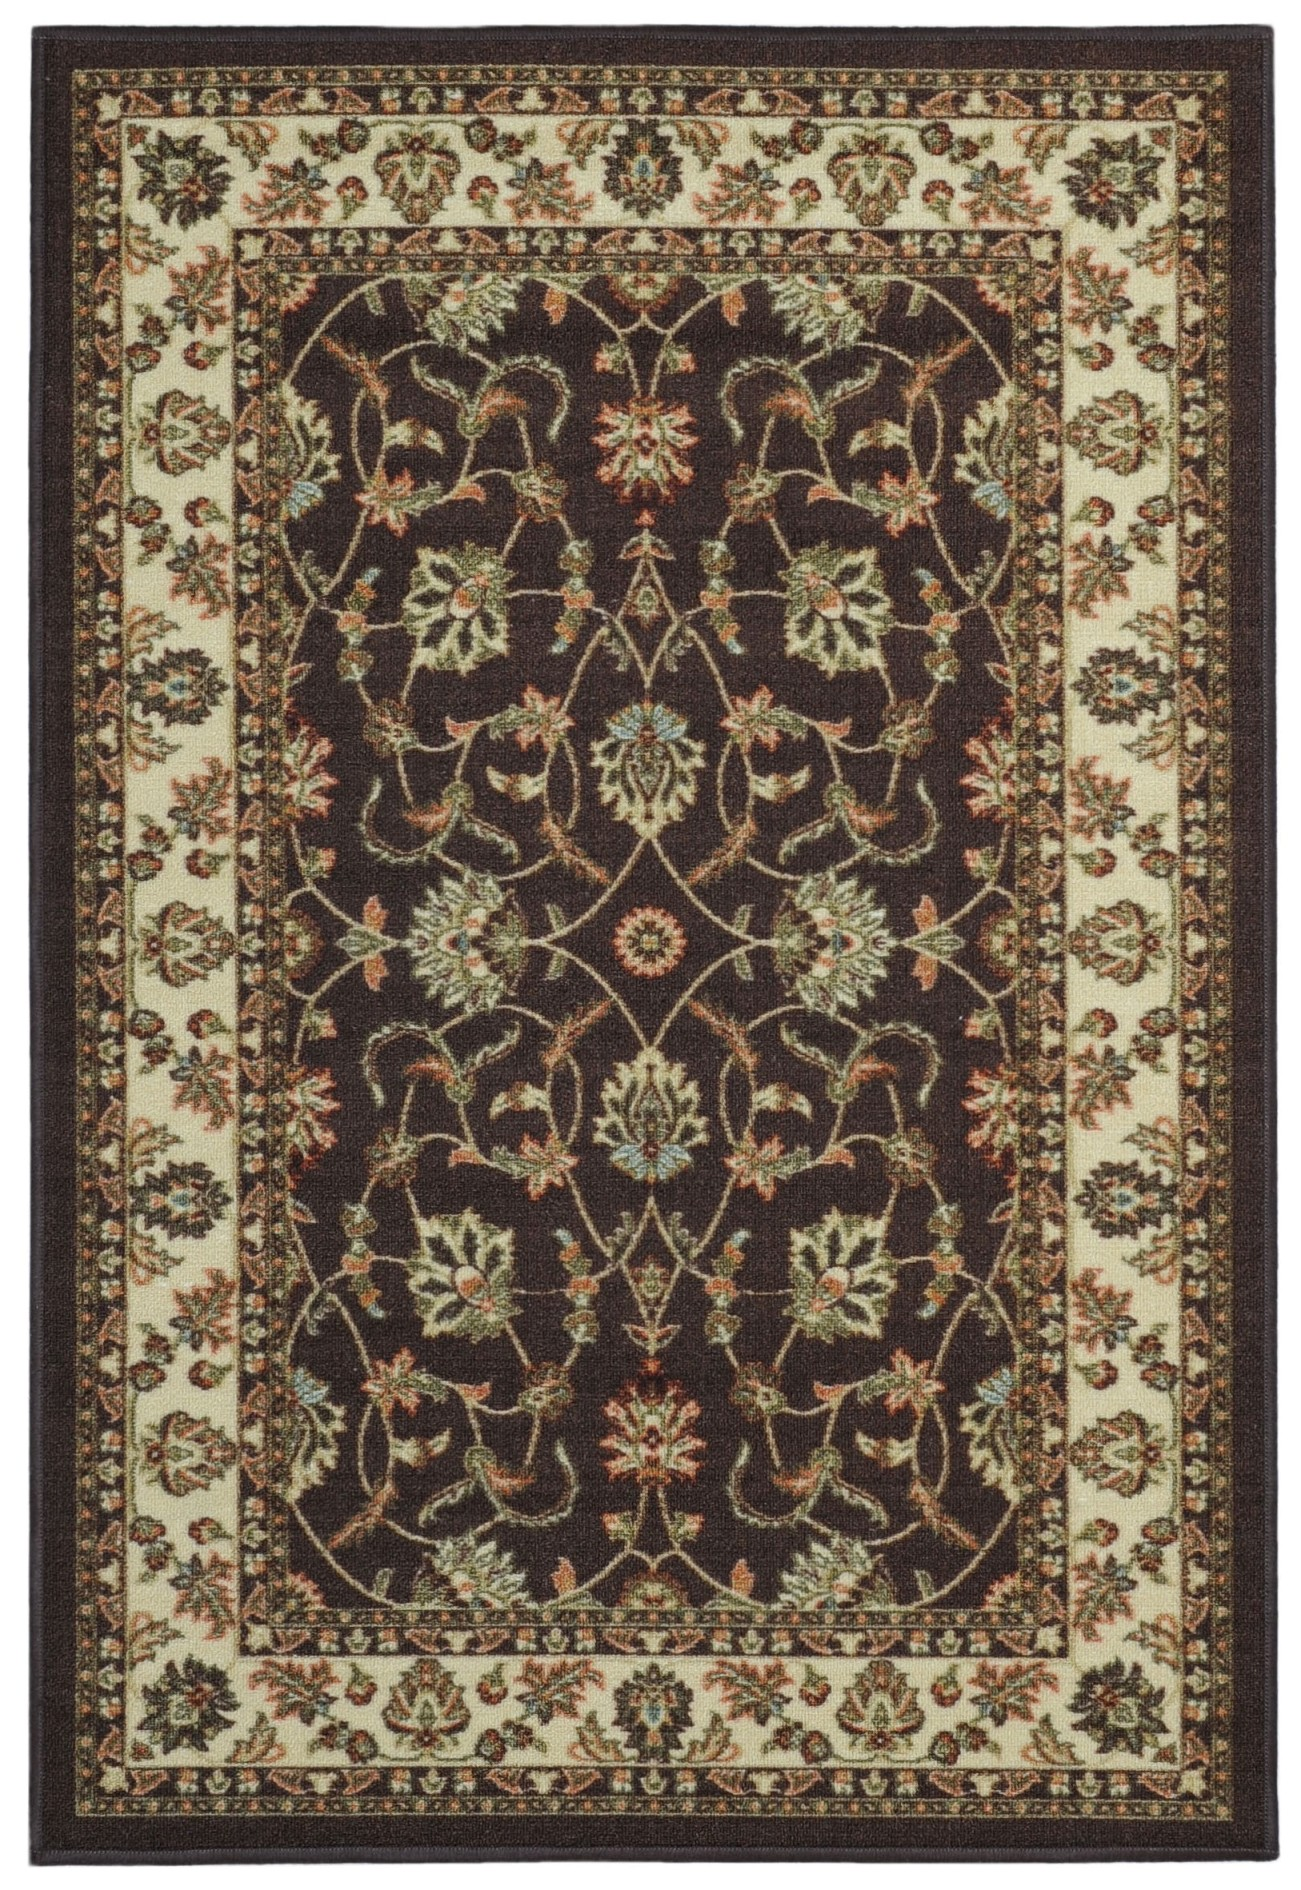 Maxy Home Hamam Collection HA-5088 (Non-Skid) Rubber Back Area Rug 60-inch-by-78-inch 5'x'7' by Rugnur